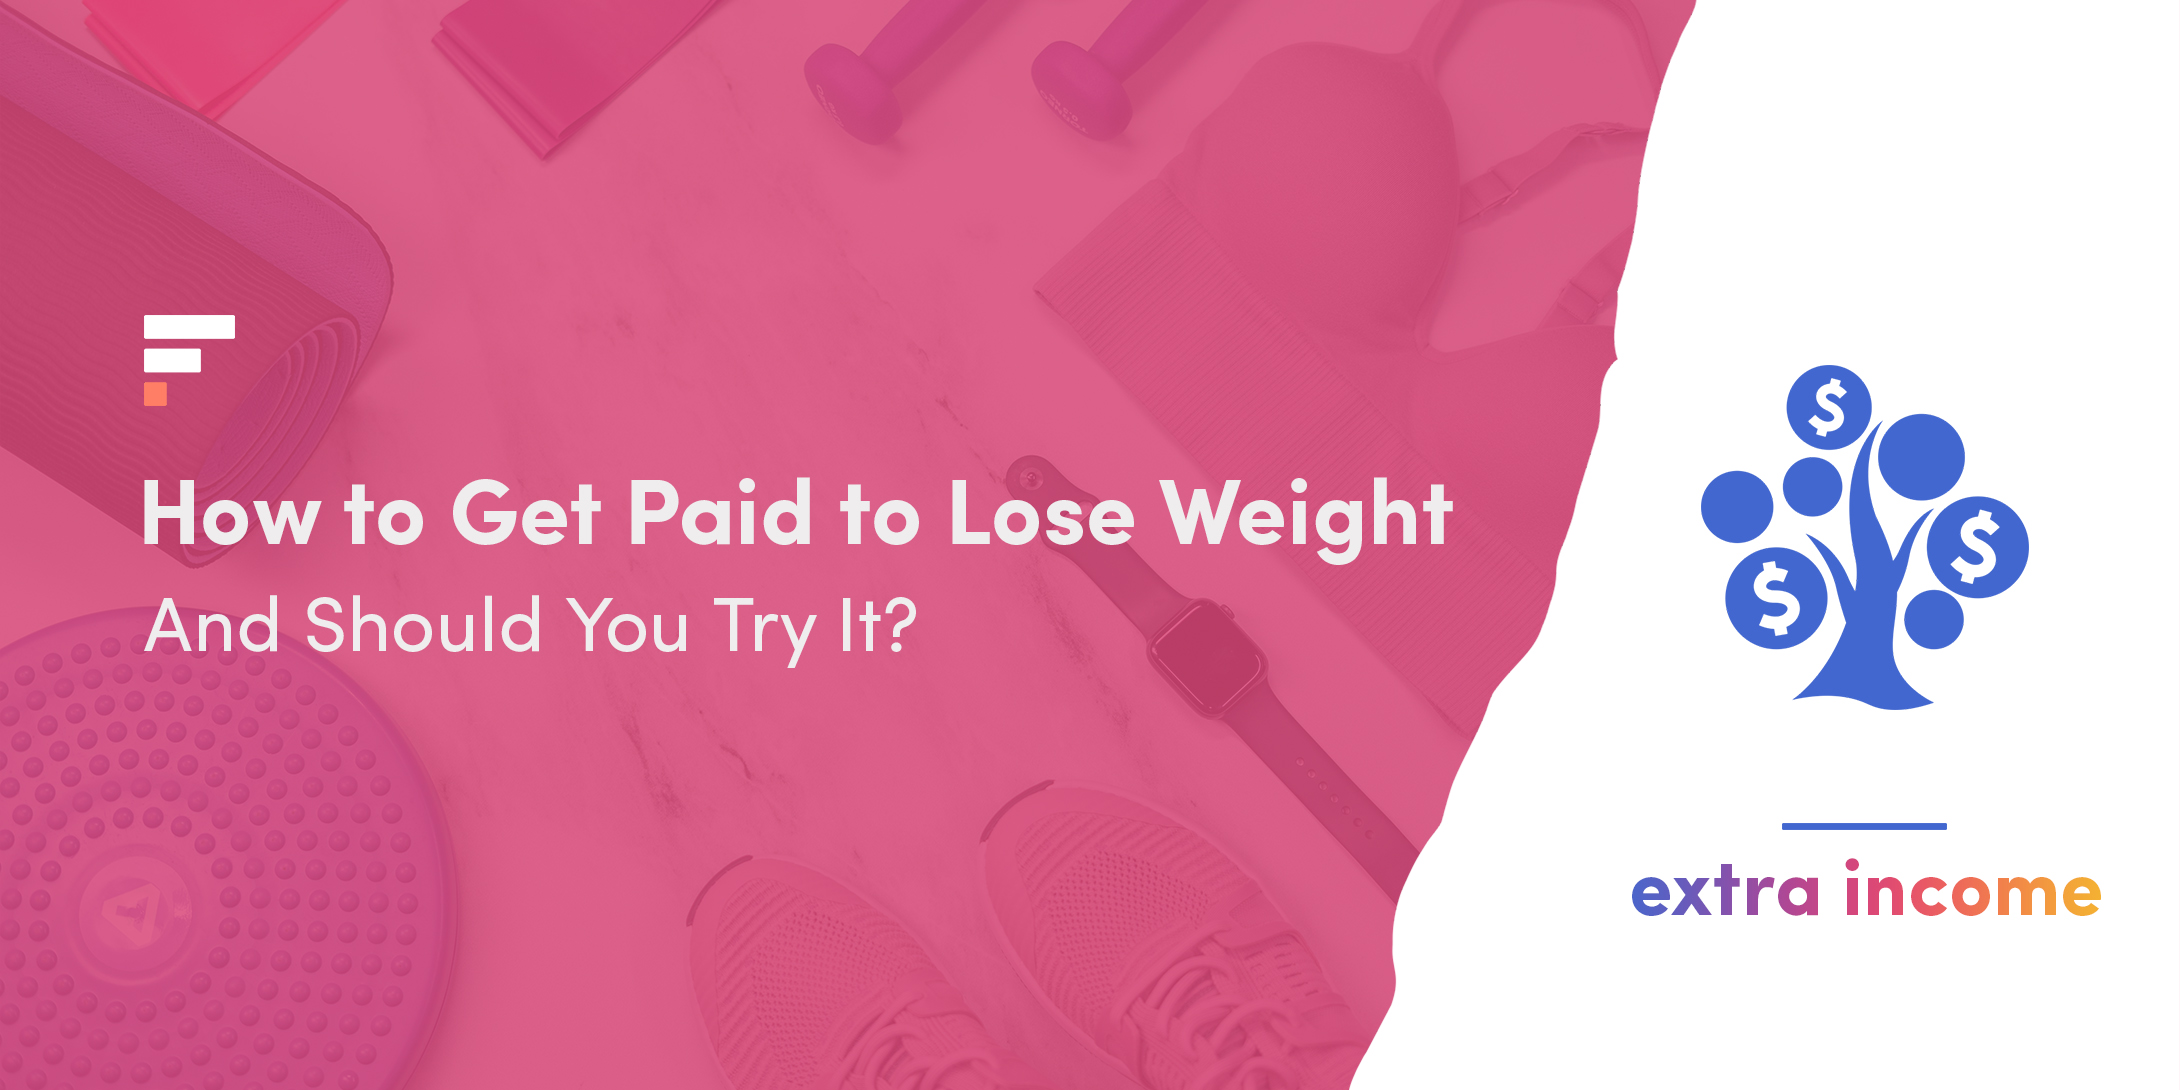 How to Get Paid to Lose Weight and Should You Try It?